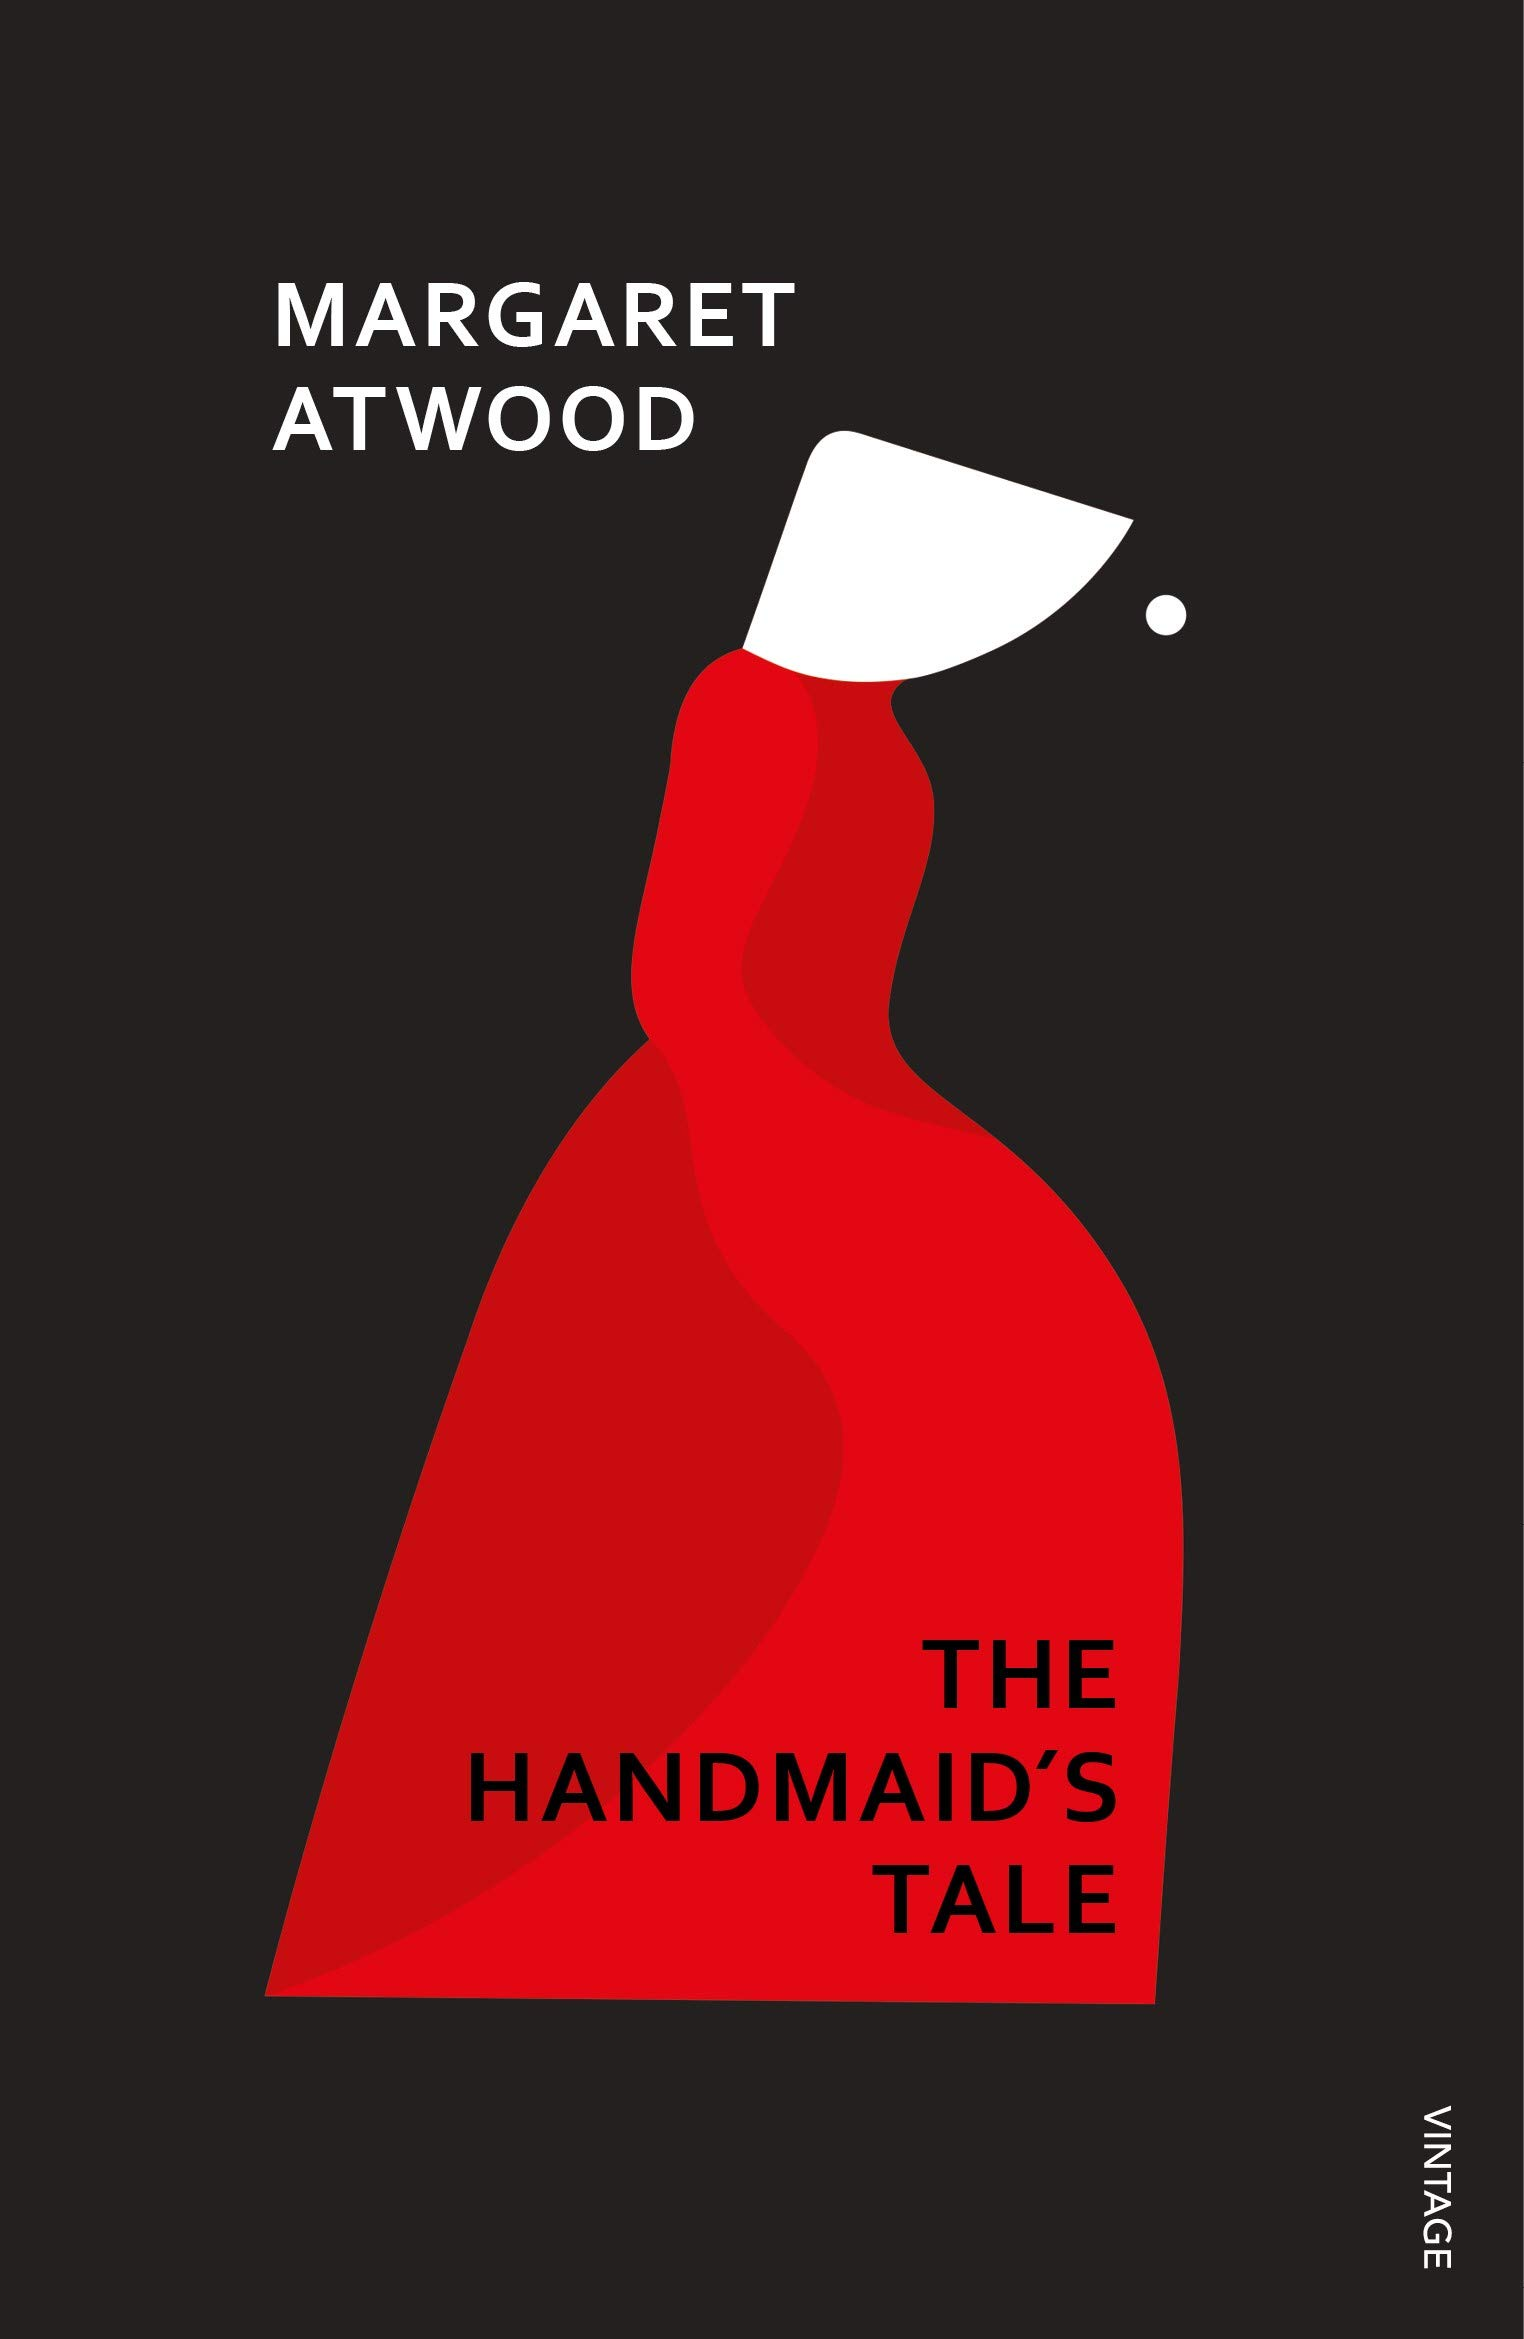 Image result for The Handmaid's Tale - Margaret Atwood